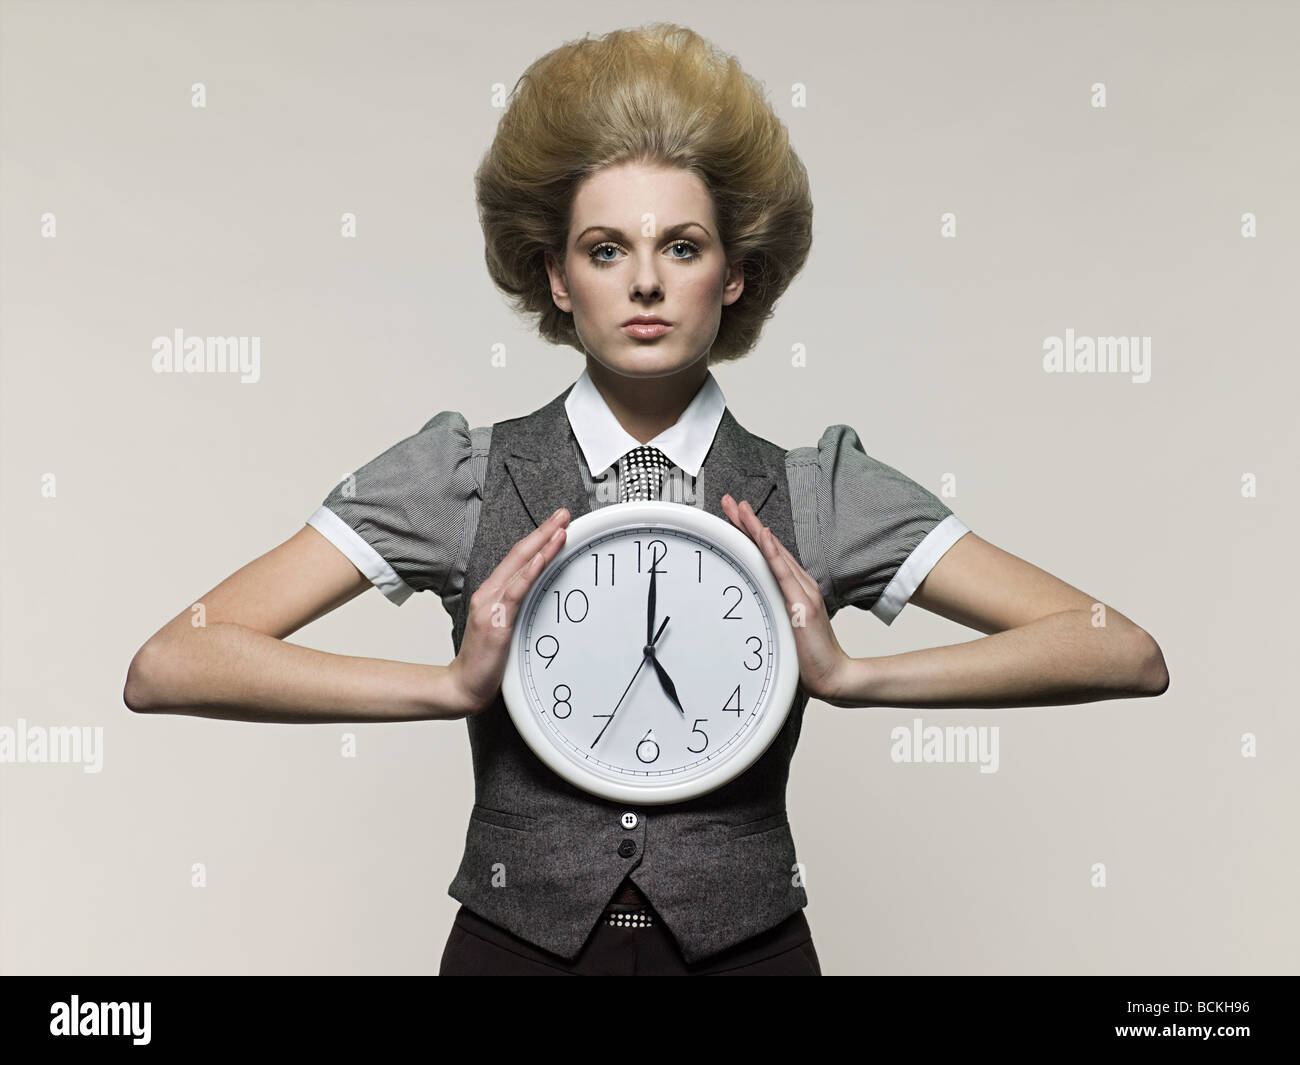 Businesswoman holding clock - Stock Image